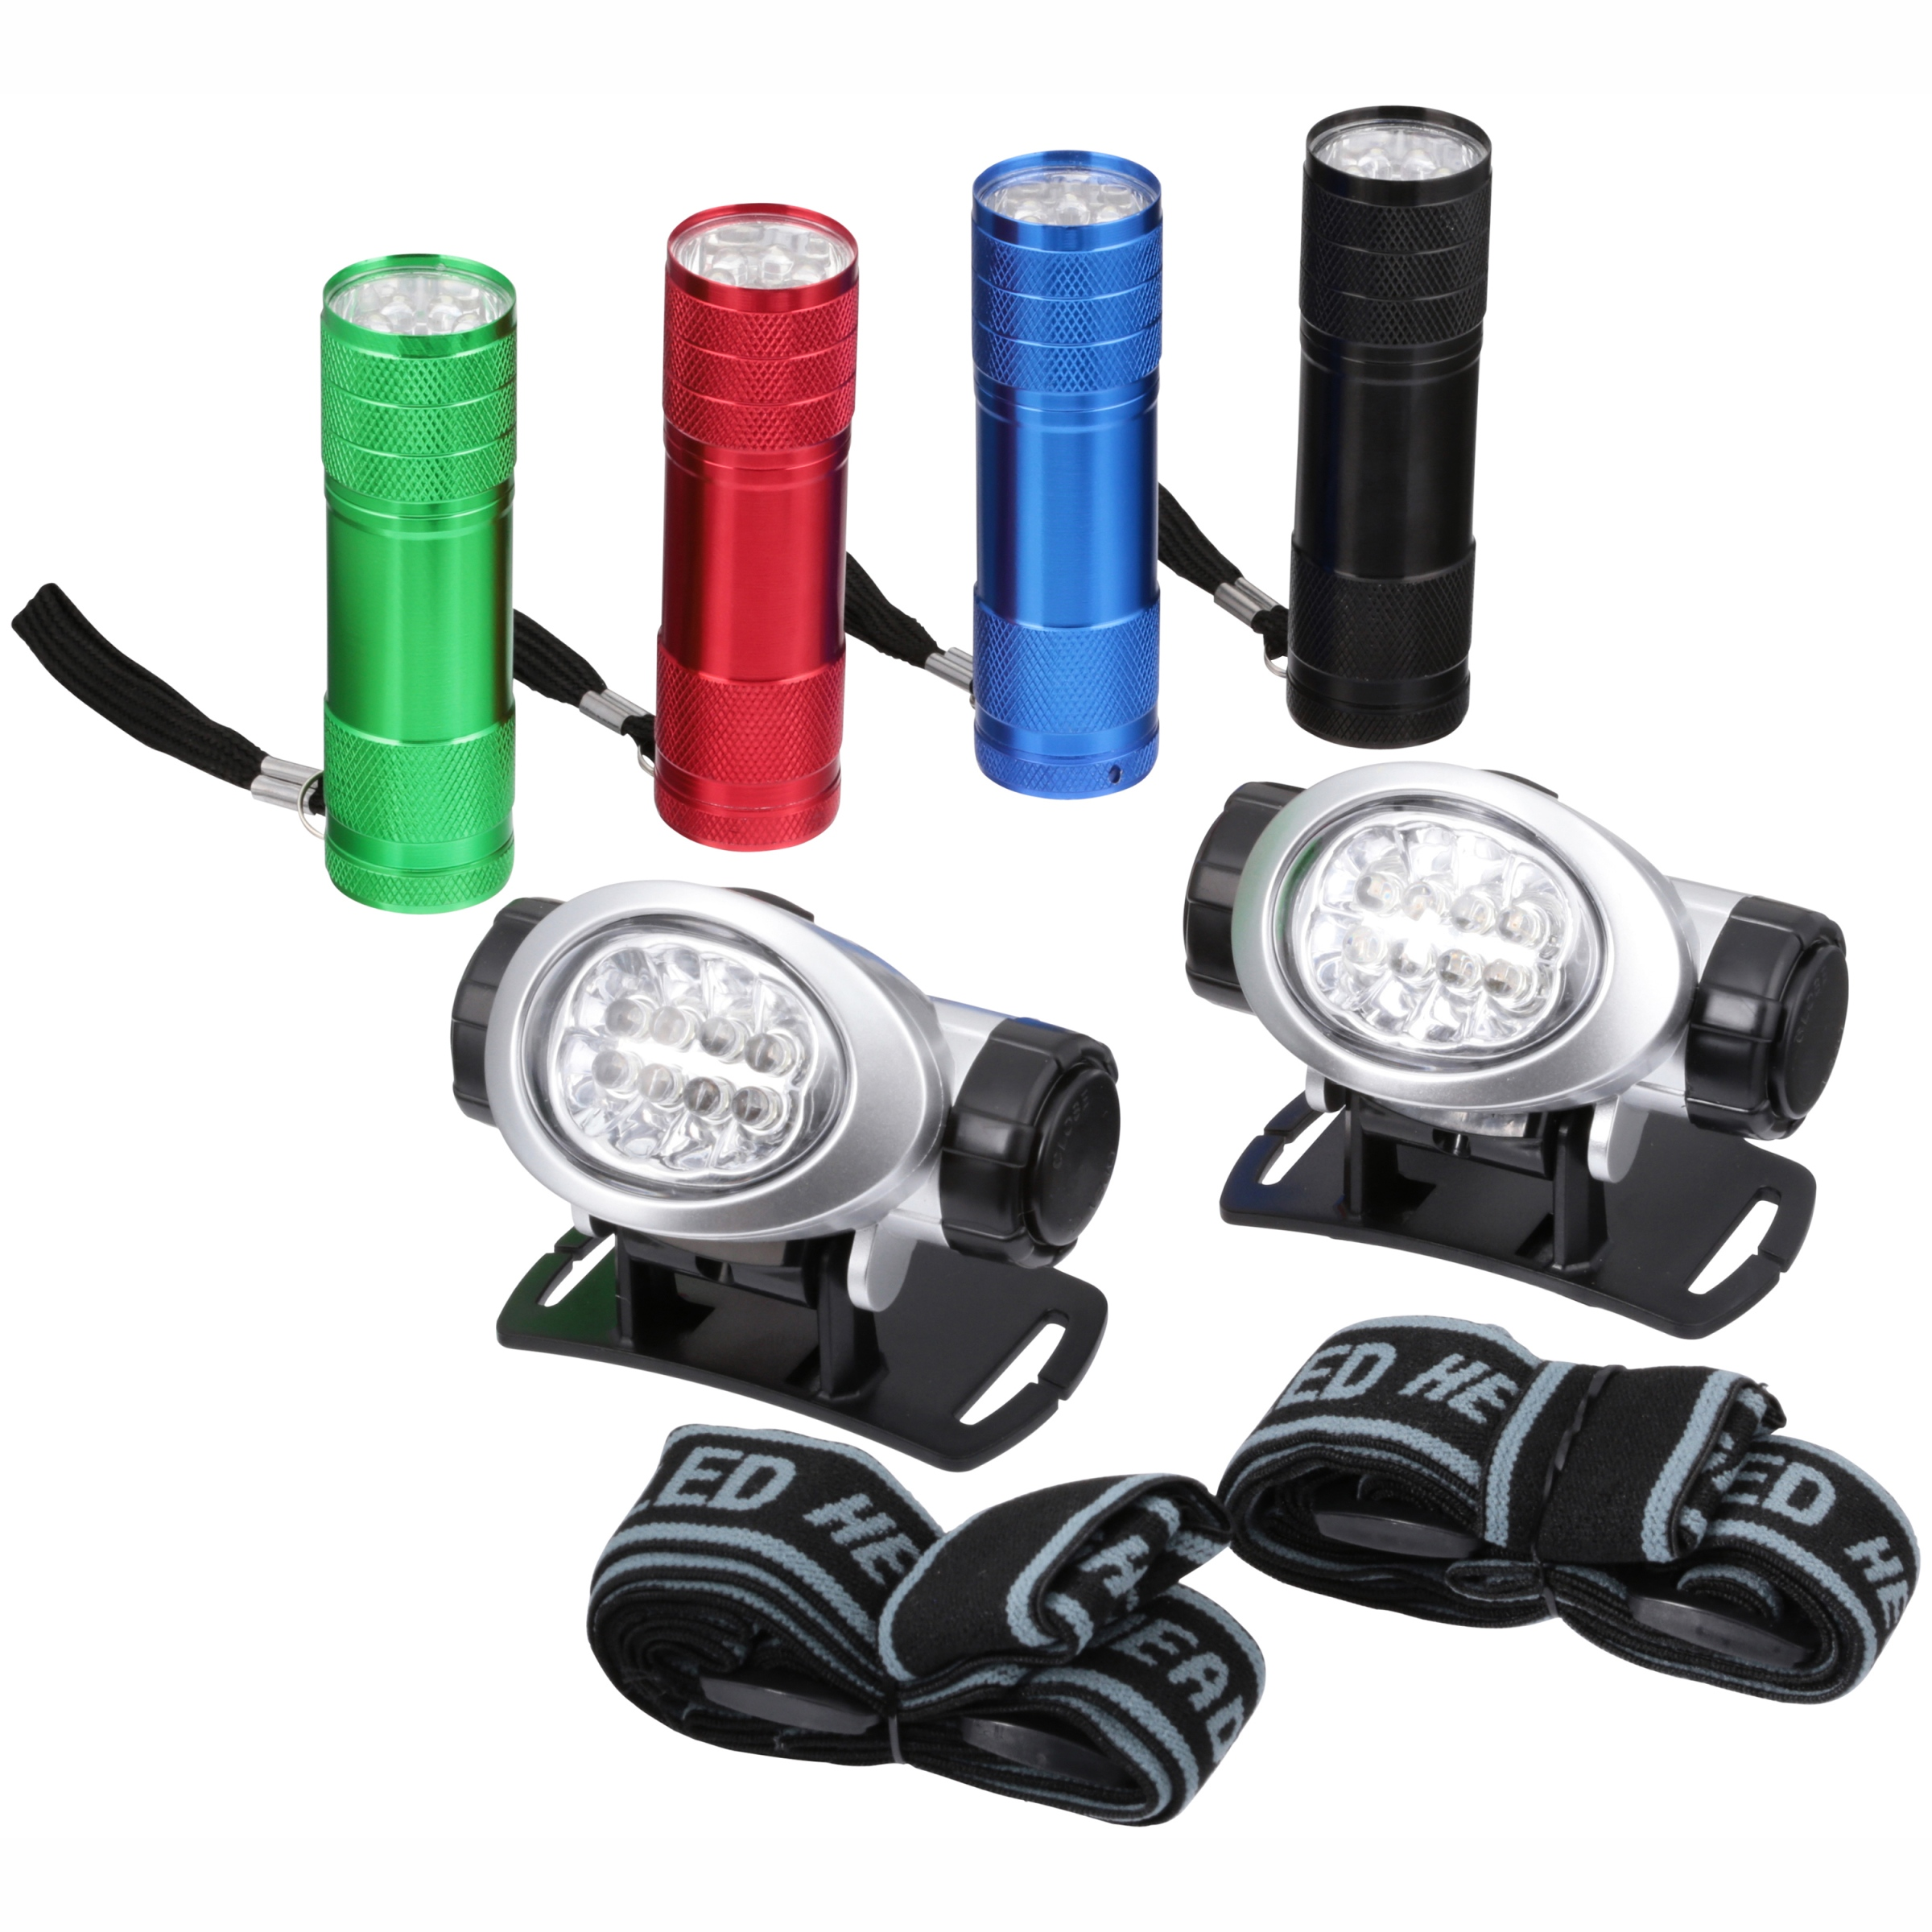 Ozark Trail�� Outdoor Equipment LED Flashlights & Headlamps Combo with Batteries Variety Pack 6 pc Carded Pack